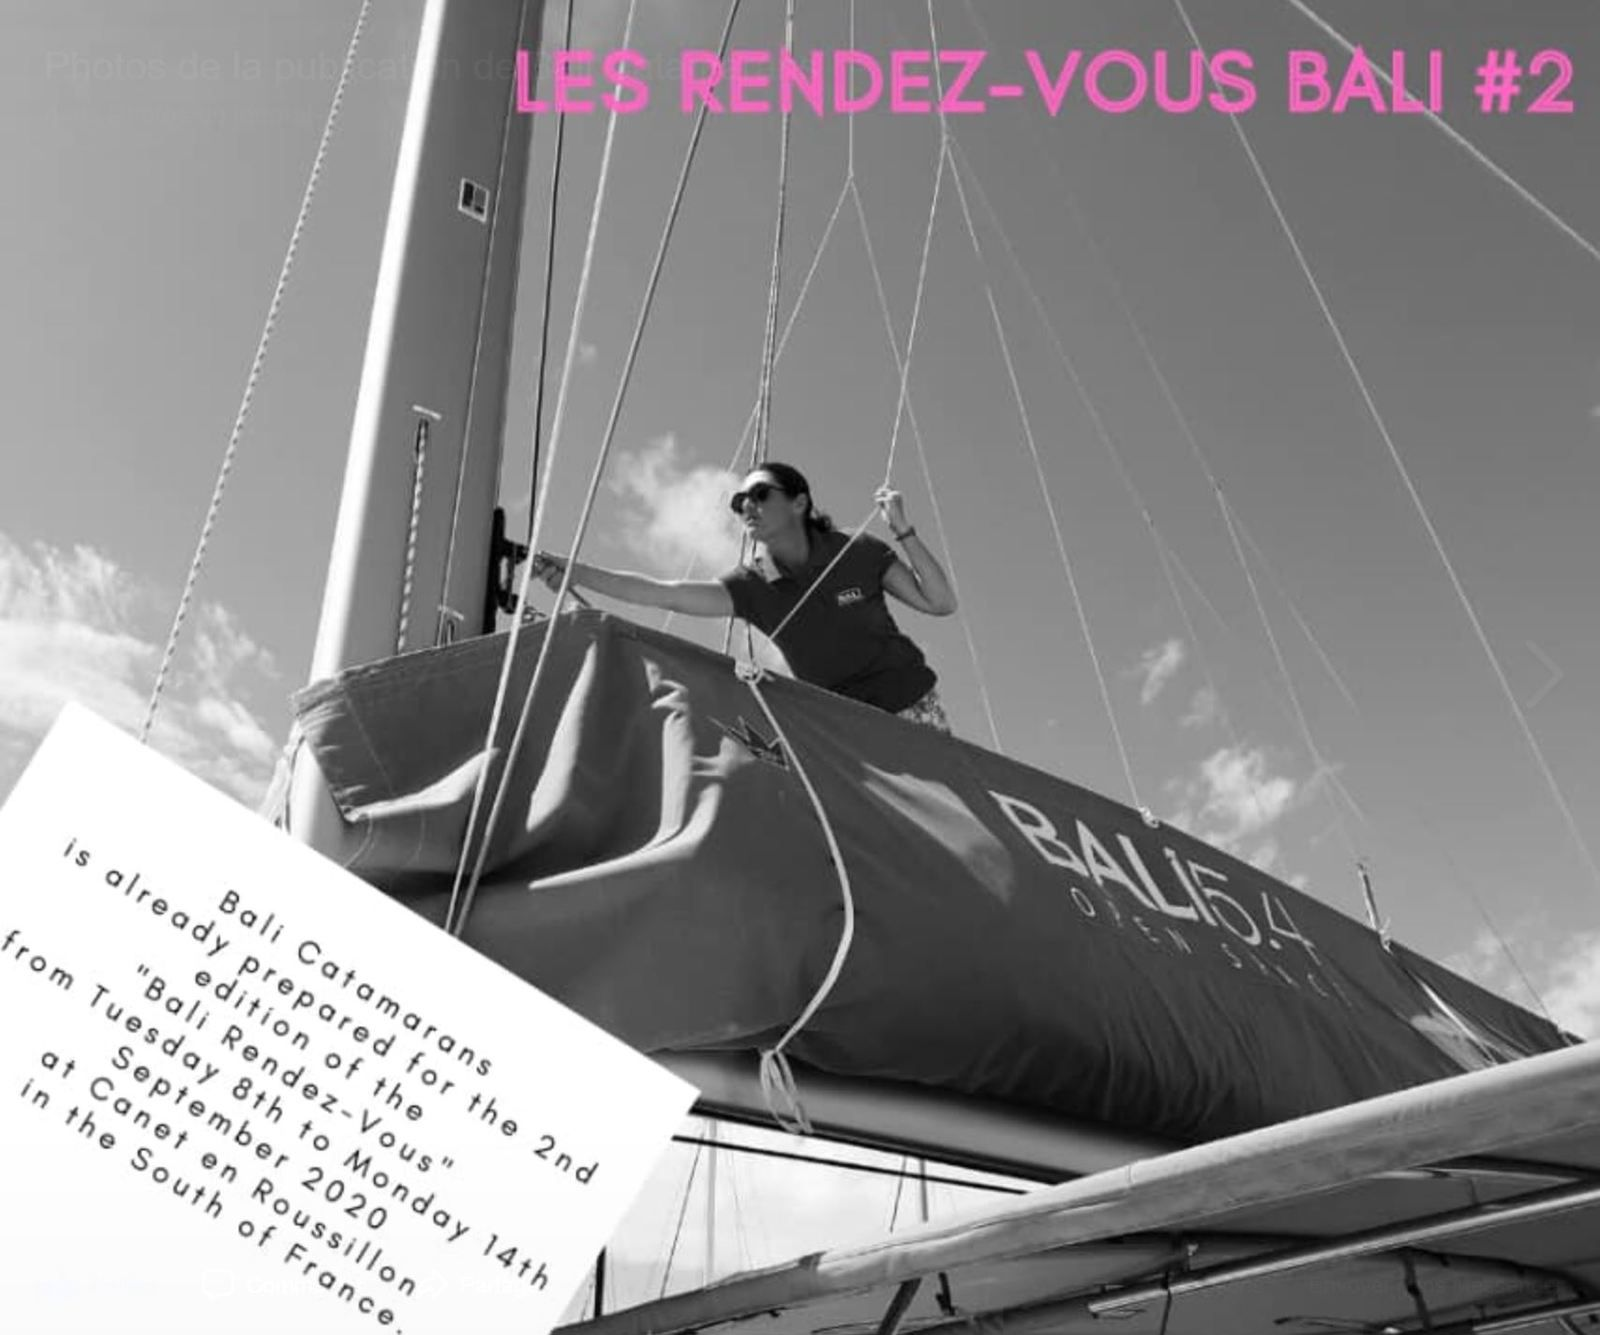 Second edition of the Rendez-Vous Bali, from 8 to 14 September, in Canet en Roussillon